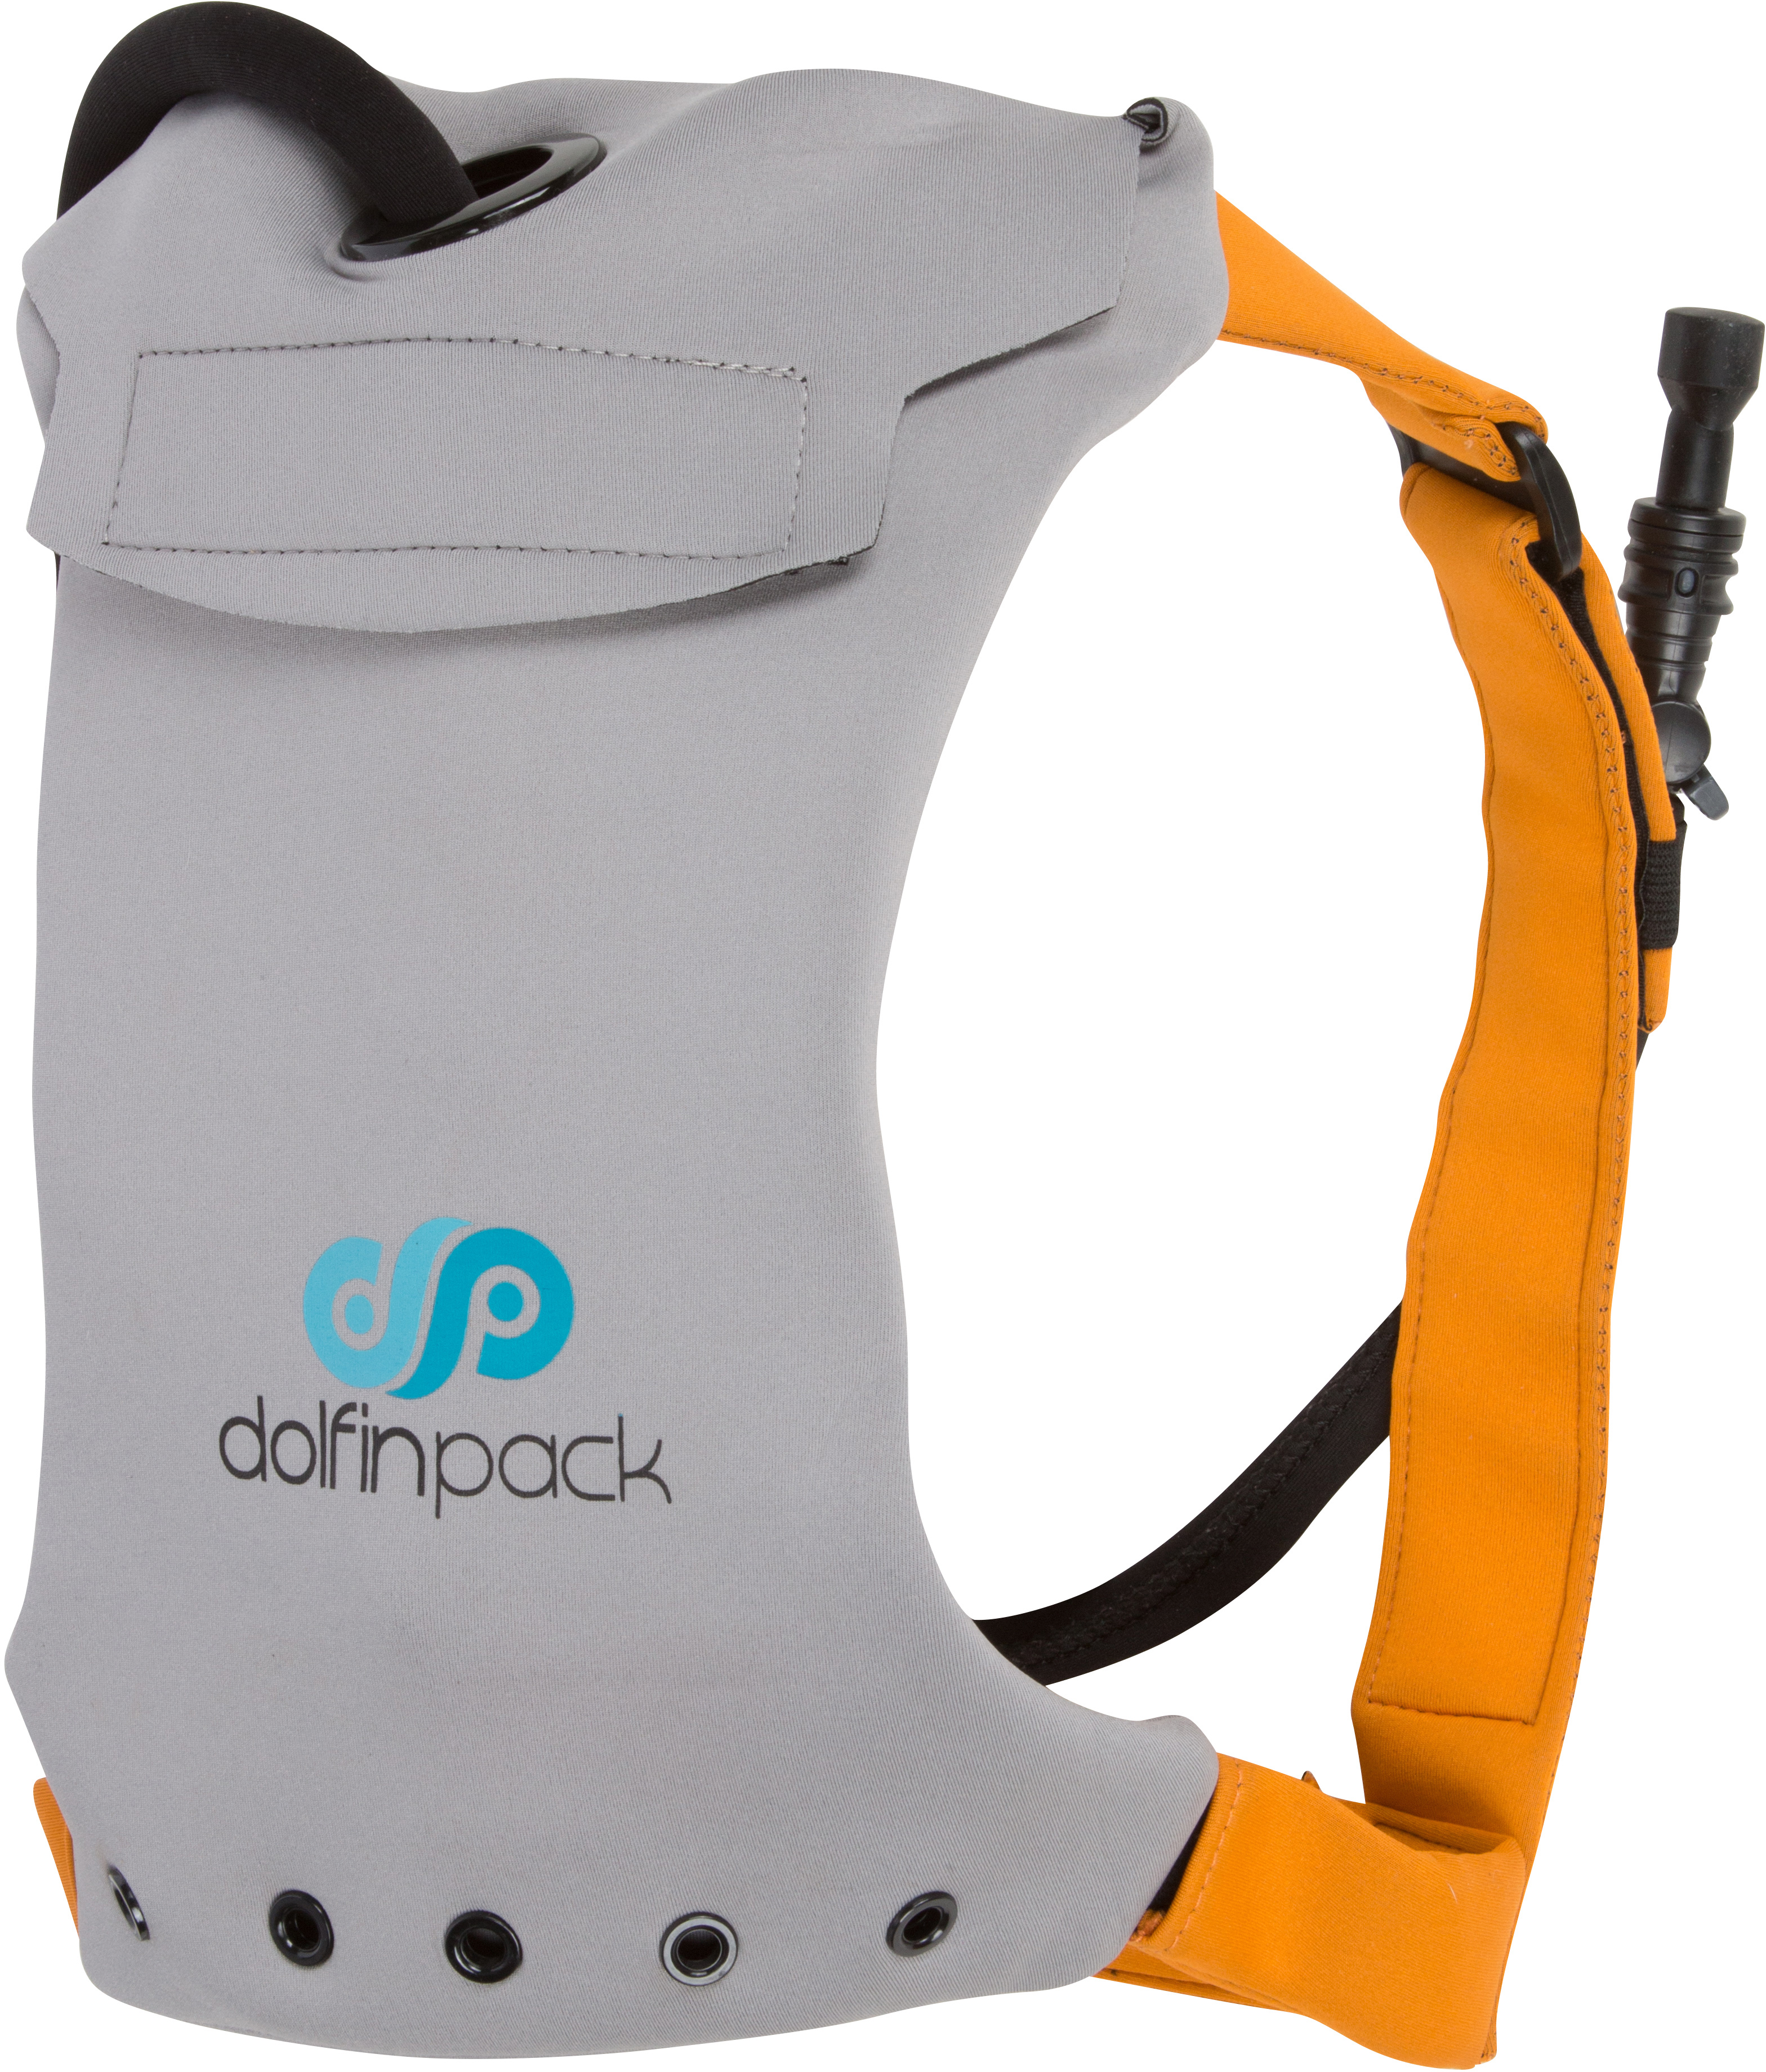 Click here to buy DolfinPack Lightweight, Form-fitting, Waterproof, Extreme Sports Hydration Pack Grey Burnt Orange by DolfinPack.